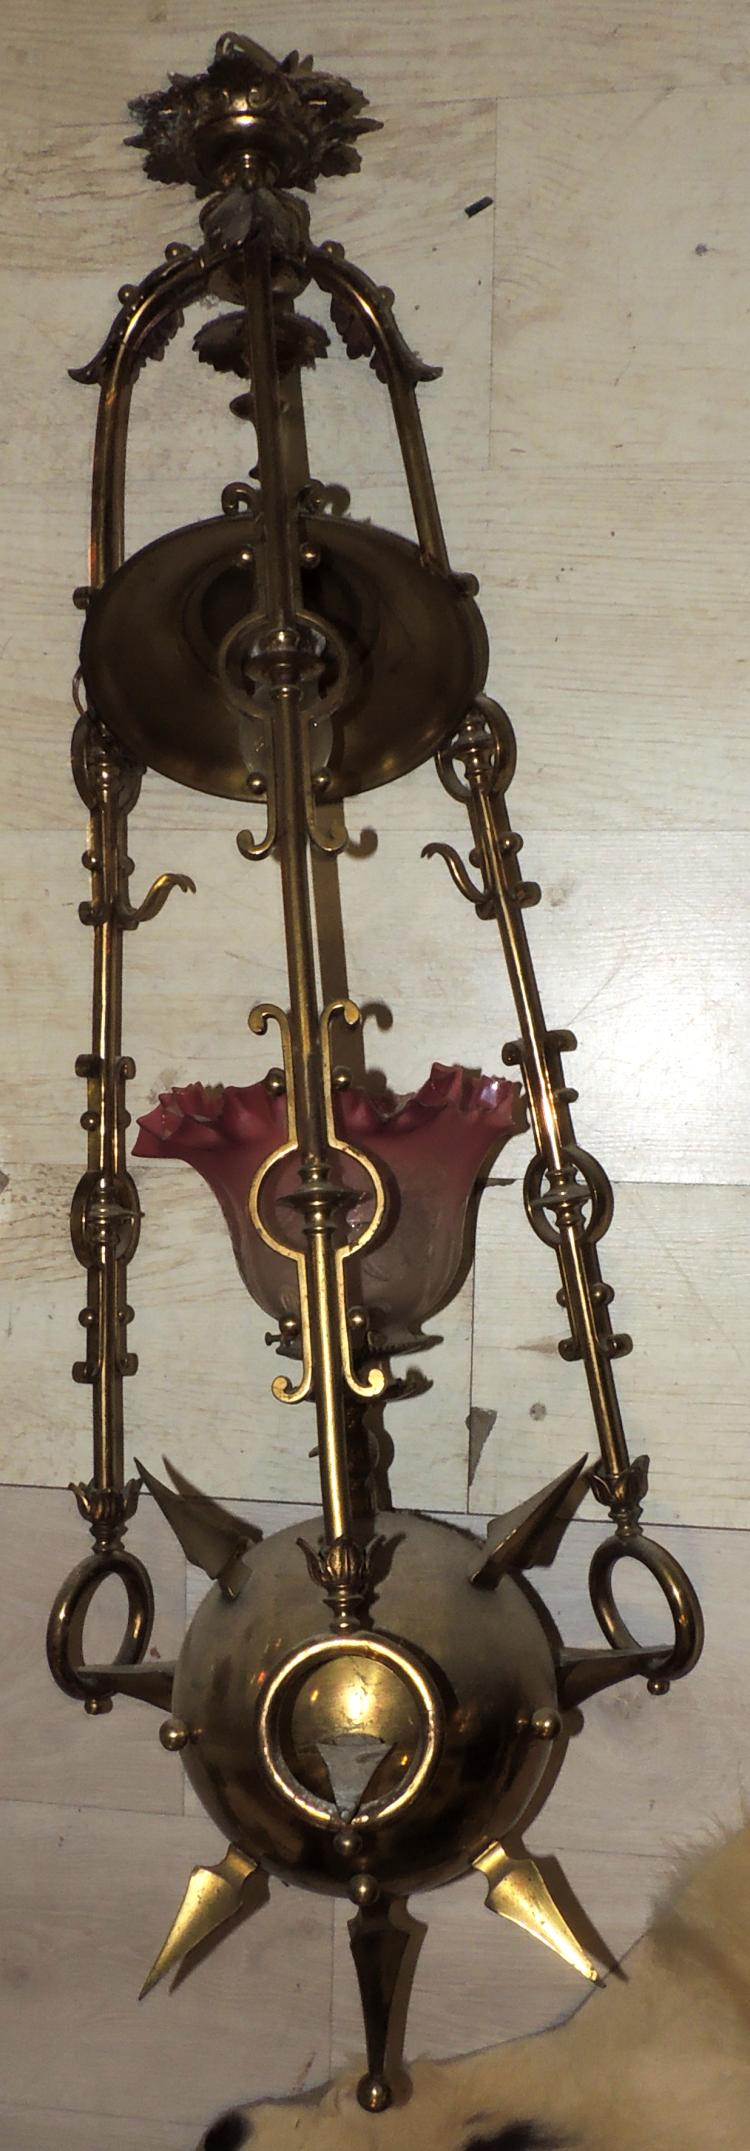 CEILING LAMP 20 YEARS OF DESIGN in gilded metal with pink glazed glass tulip.Height: 100 cm